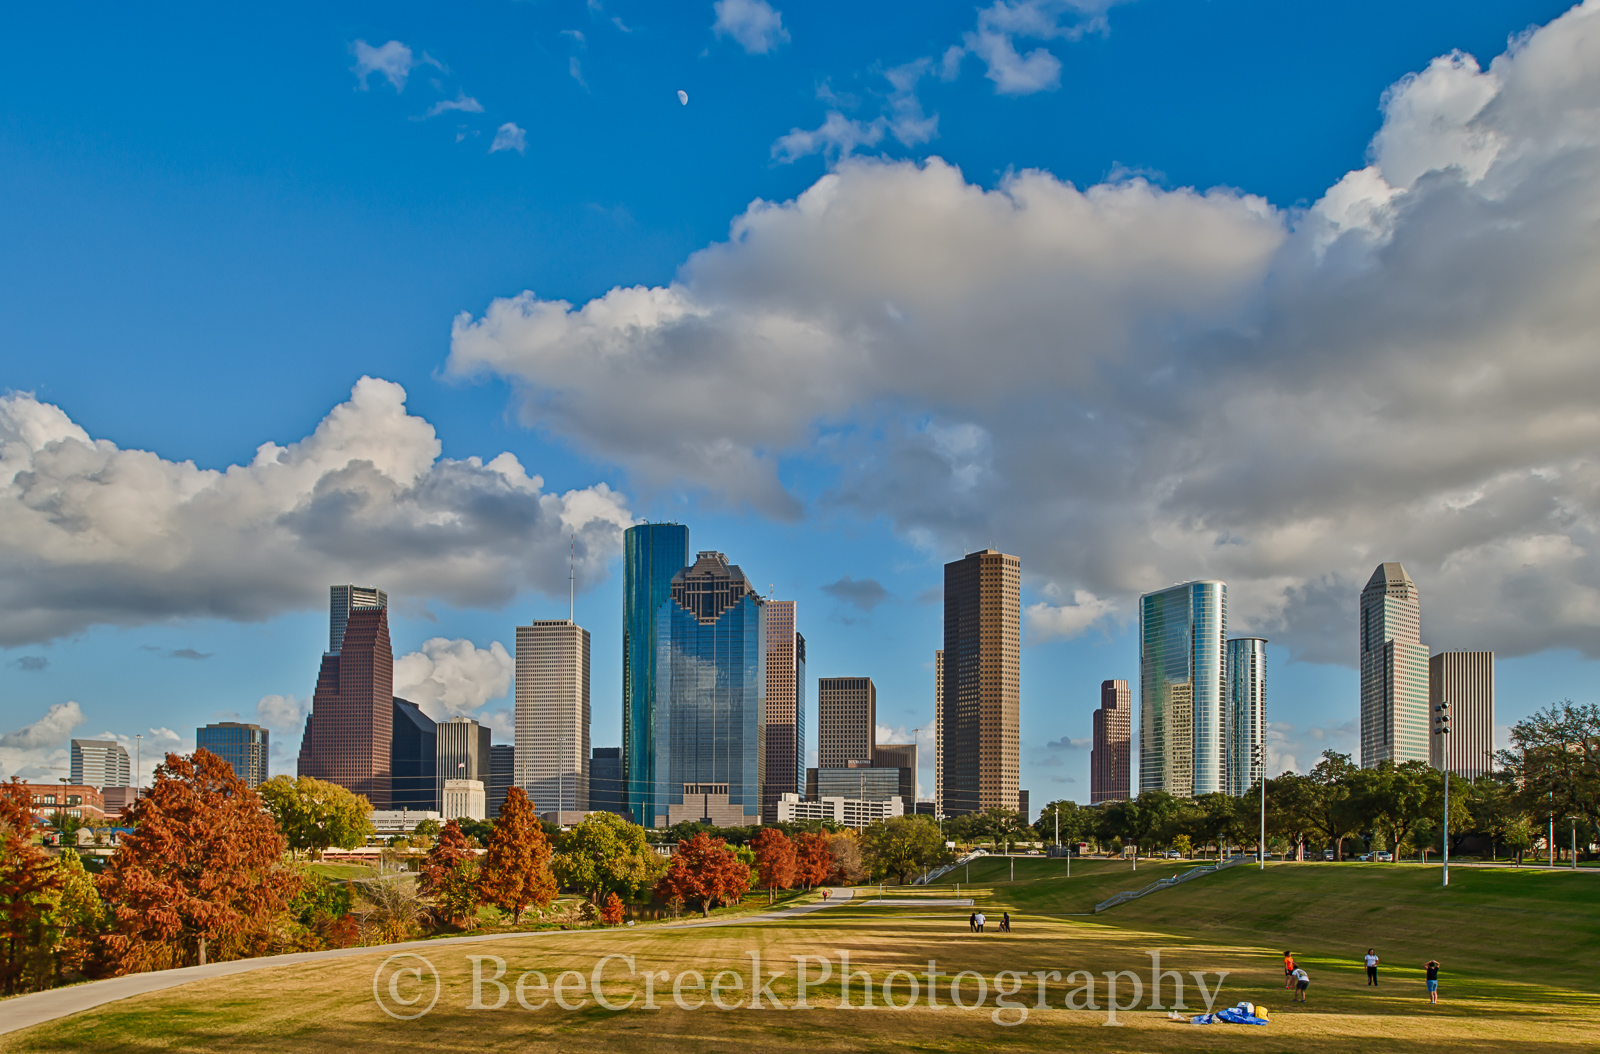 Houston, architecture, bayou, city, city scene, cityscape, cityscapes, downtown, fall, high rises, houston texas, orange, red, skyline, skylines, skyscapes, theater district, trees, urban scene, photo